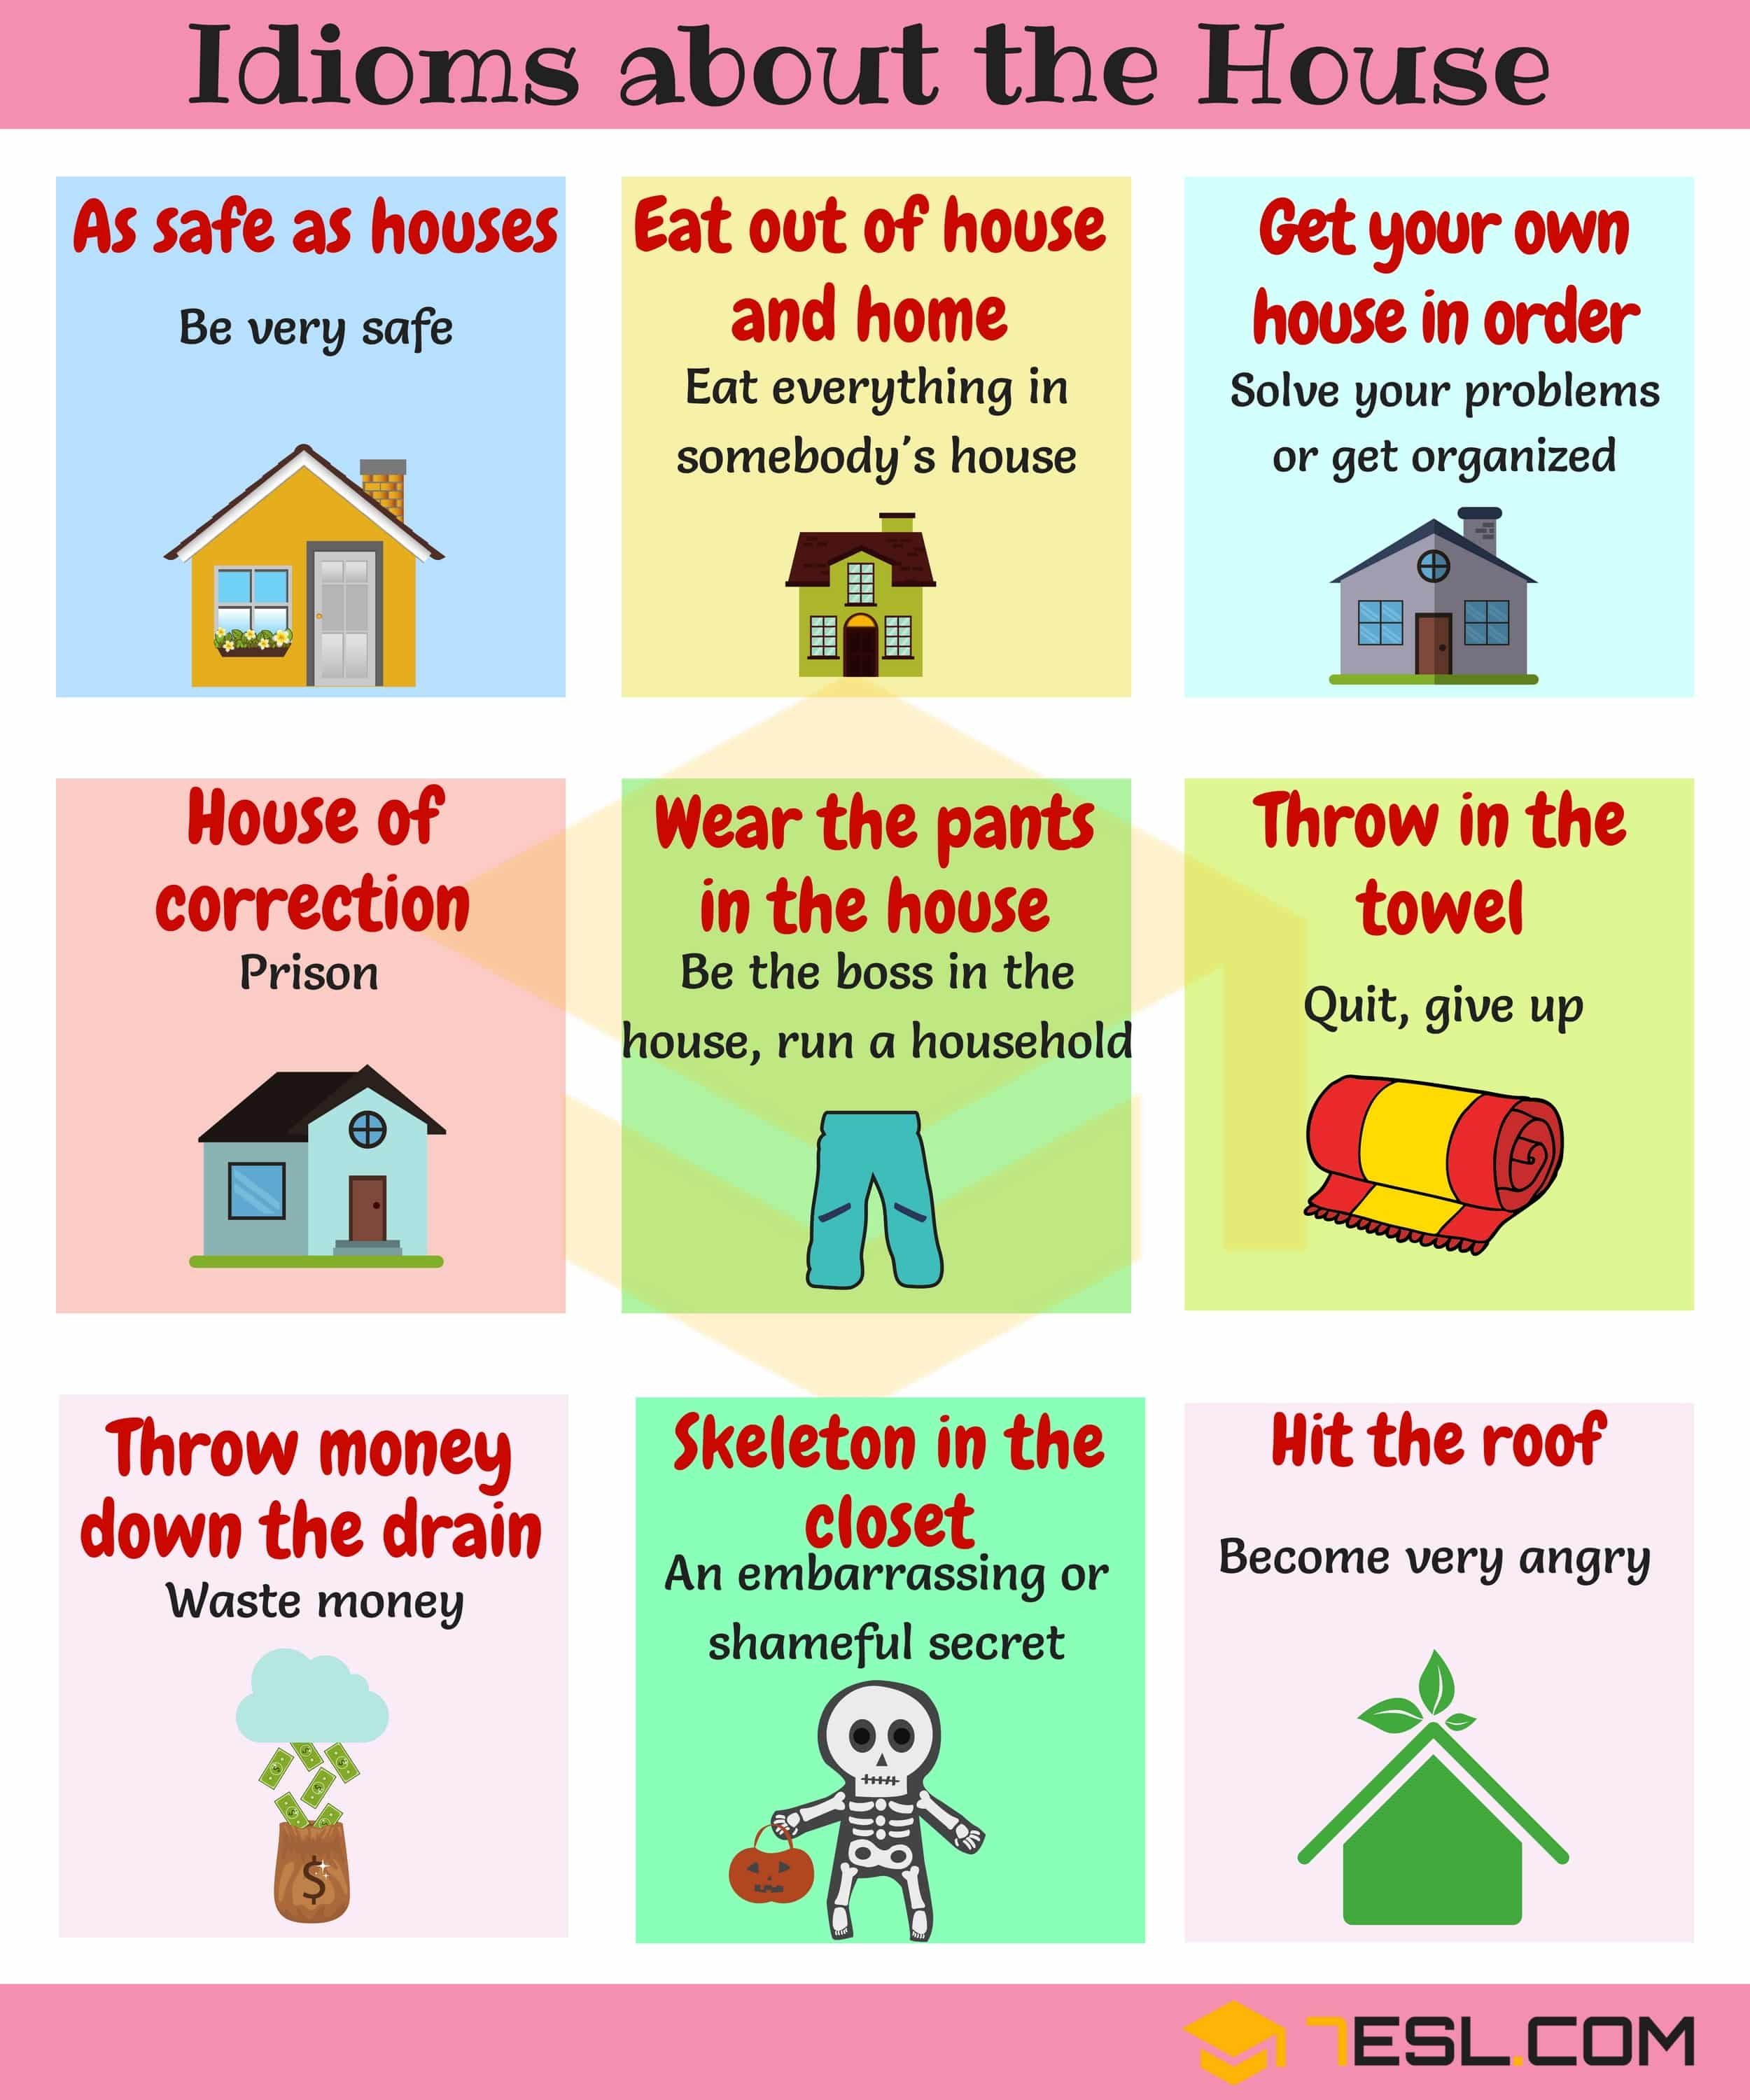 Home Idioms 28 Useful Idioms About The House And Home  7